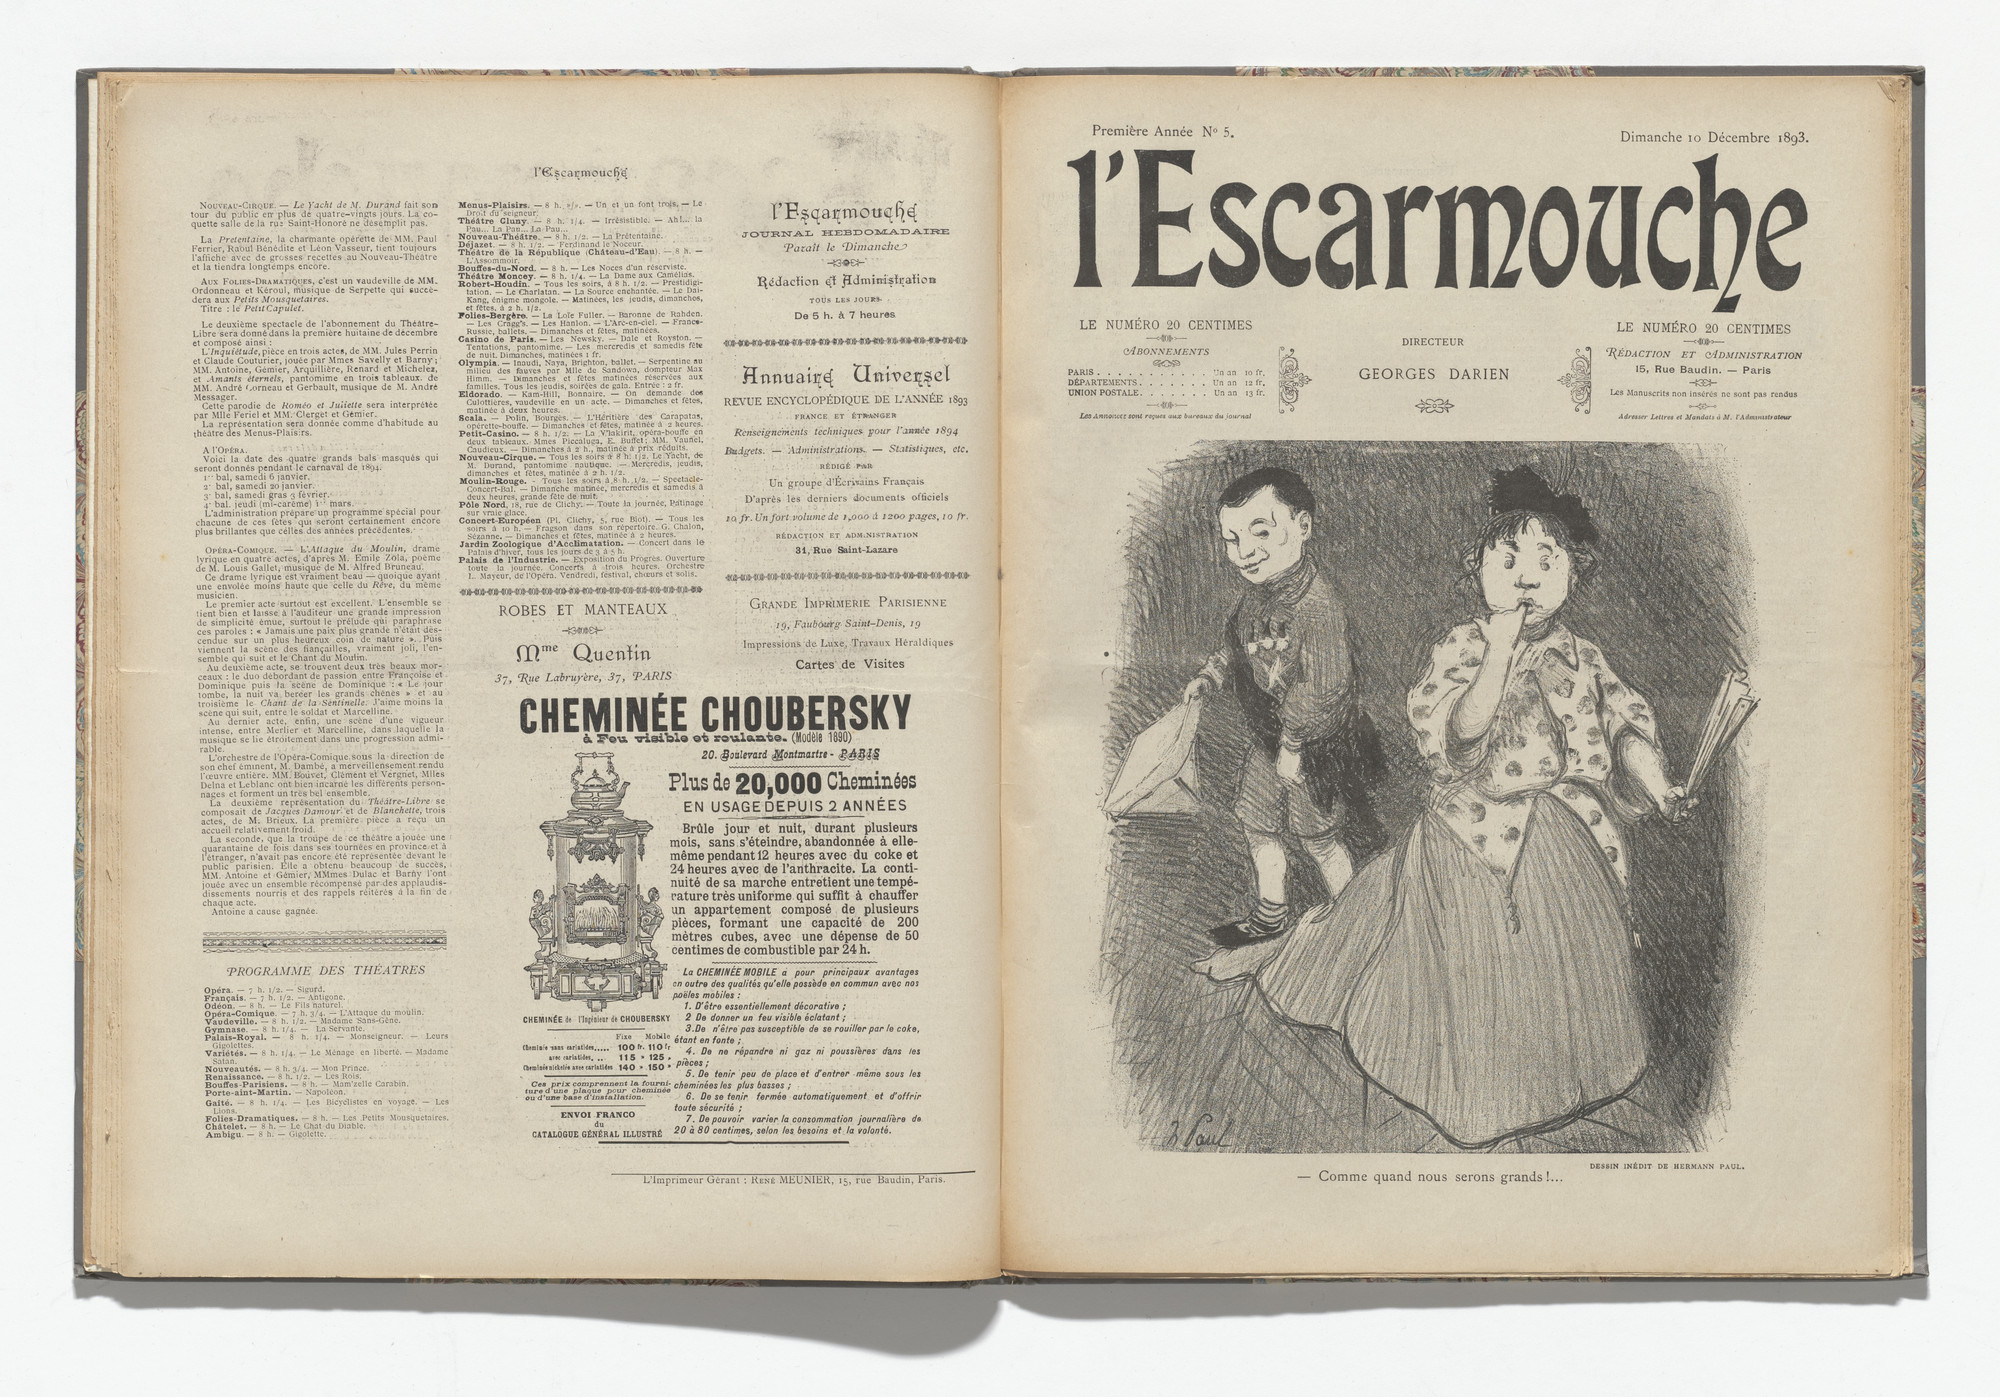 Various Artists. L'Escarmouche, no. 5. December 10, 1893